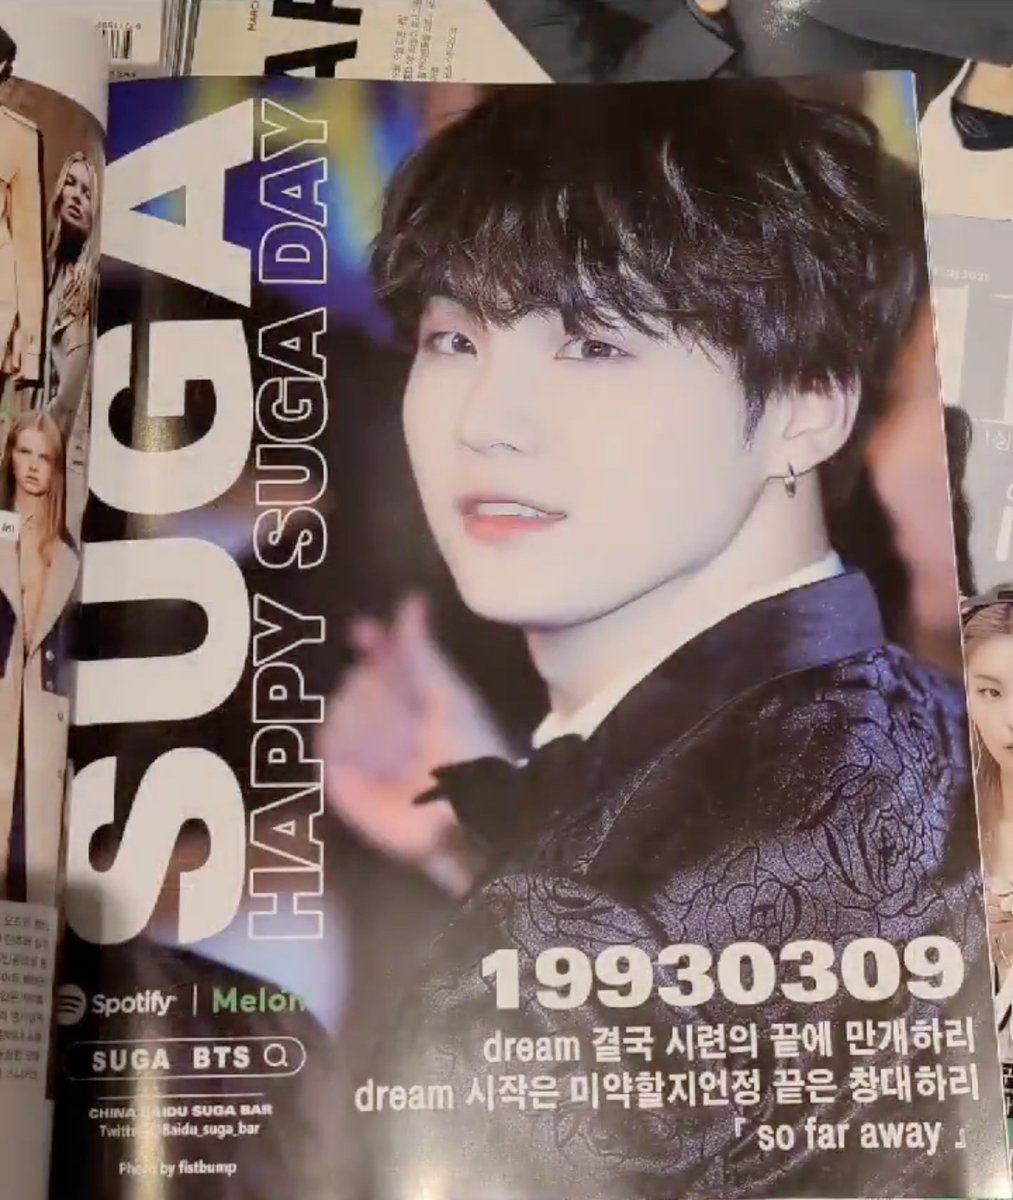 @BTS_twt - Marie Claire  * #SUGA is the first idol to have support pages on 5 major fashion magazines.